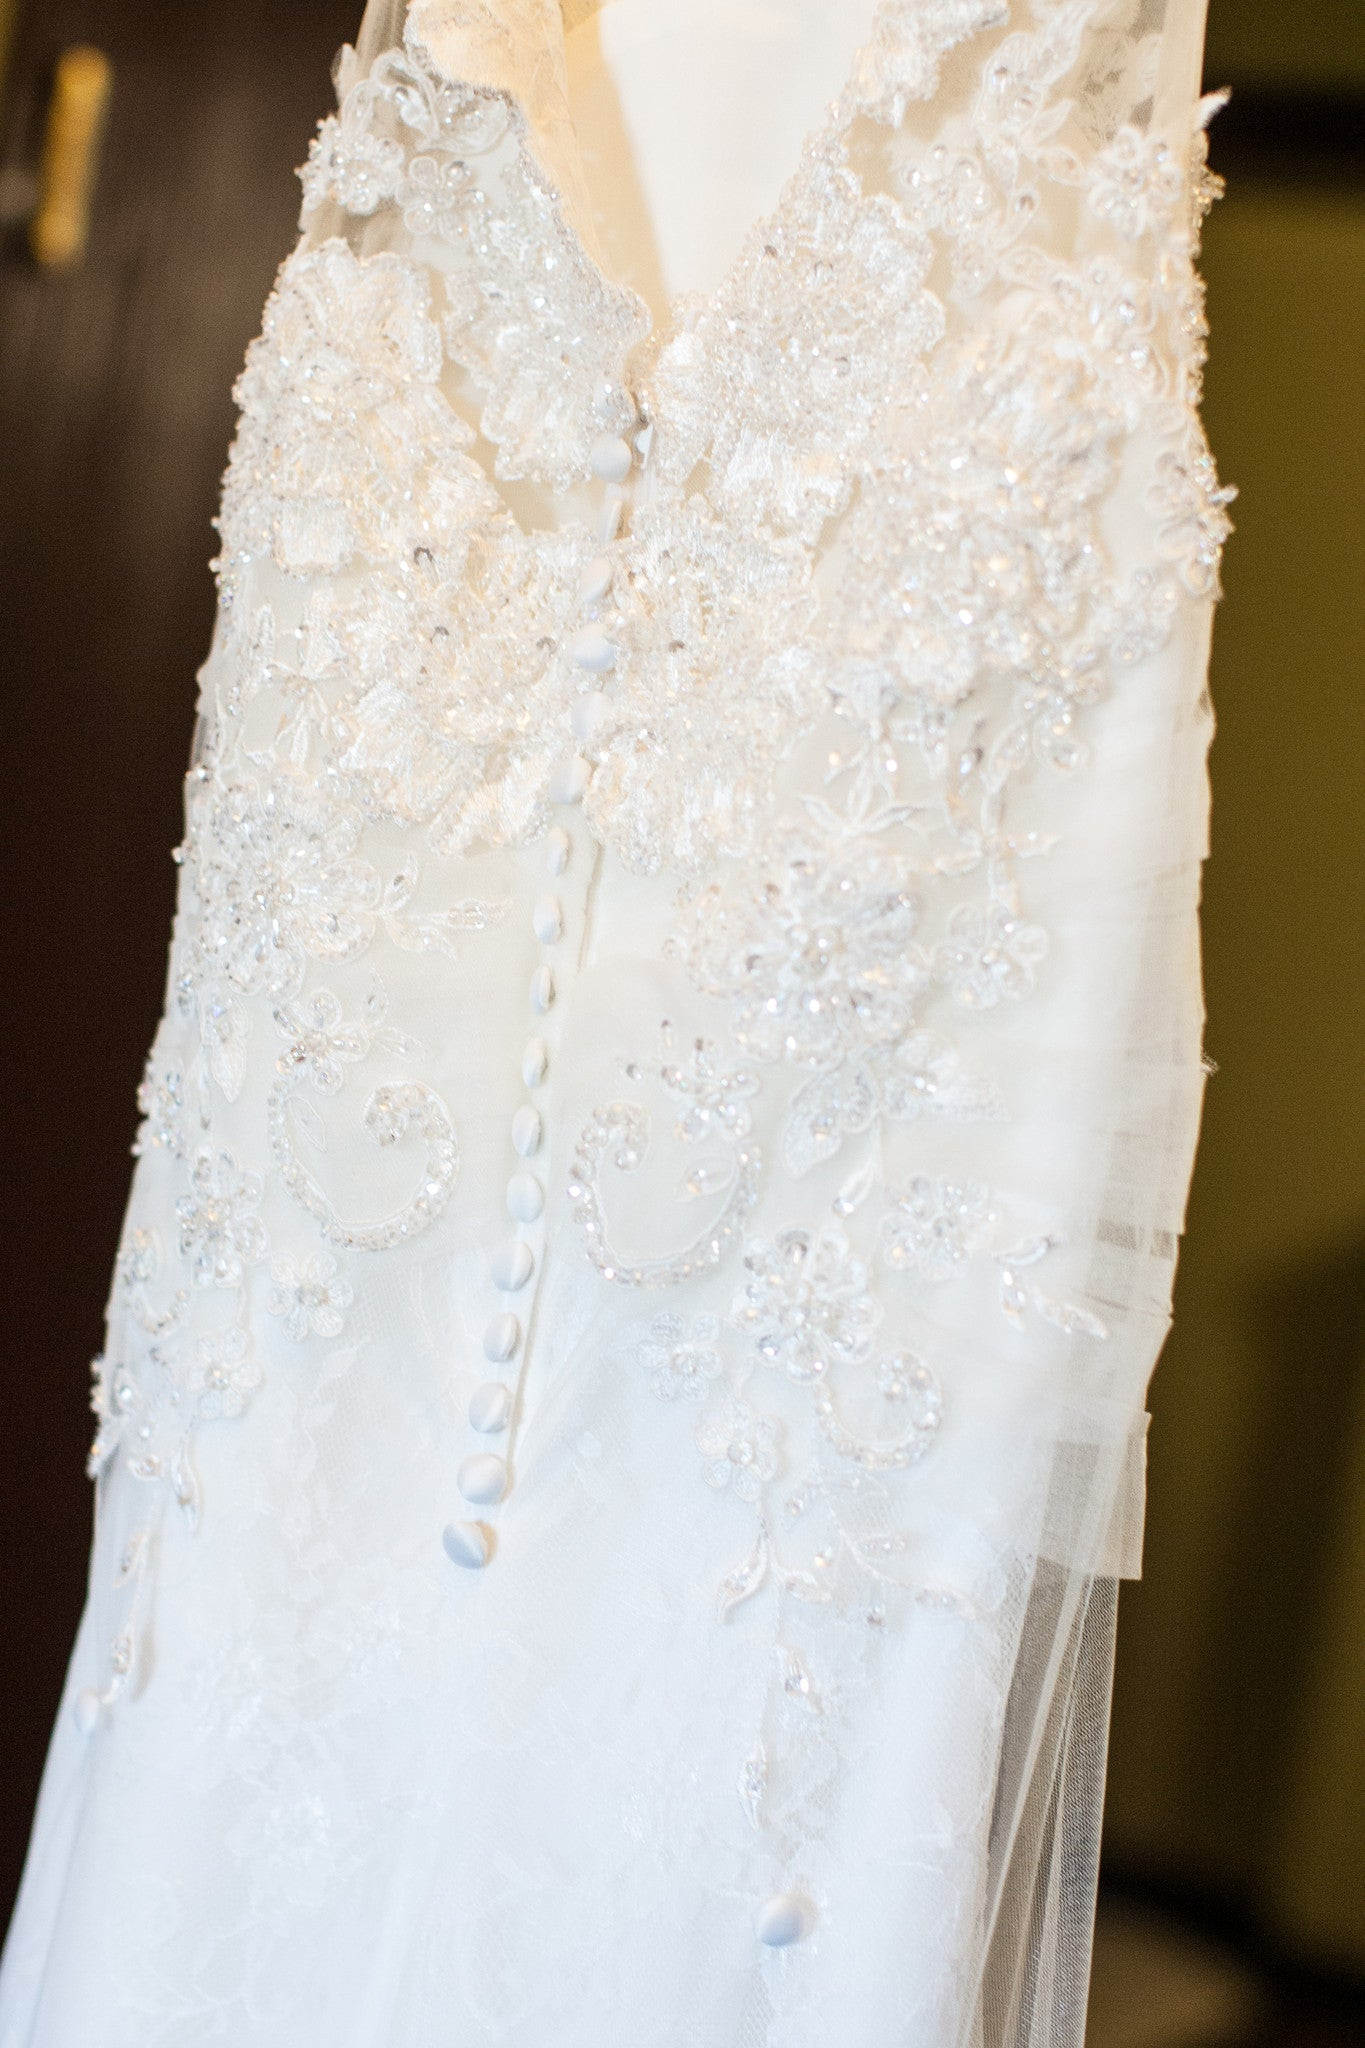 Lace Wedding Gown With Cut-Out (#Cindy)